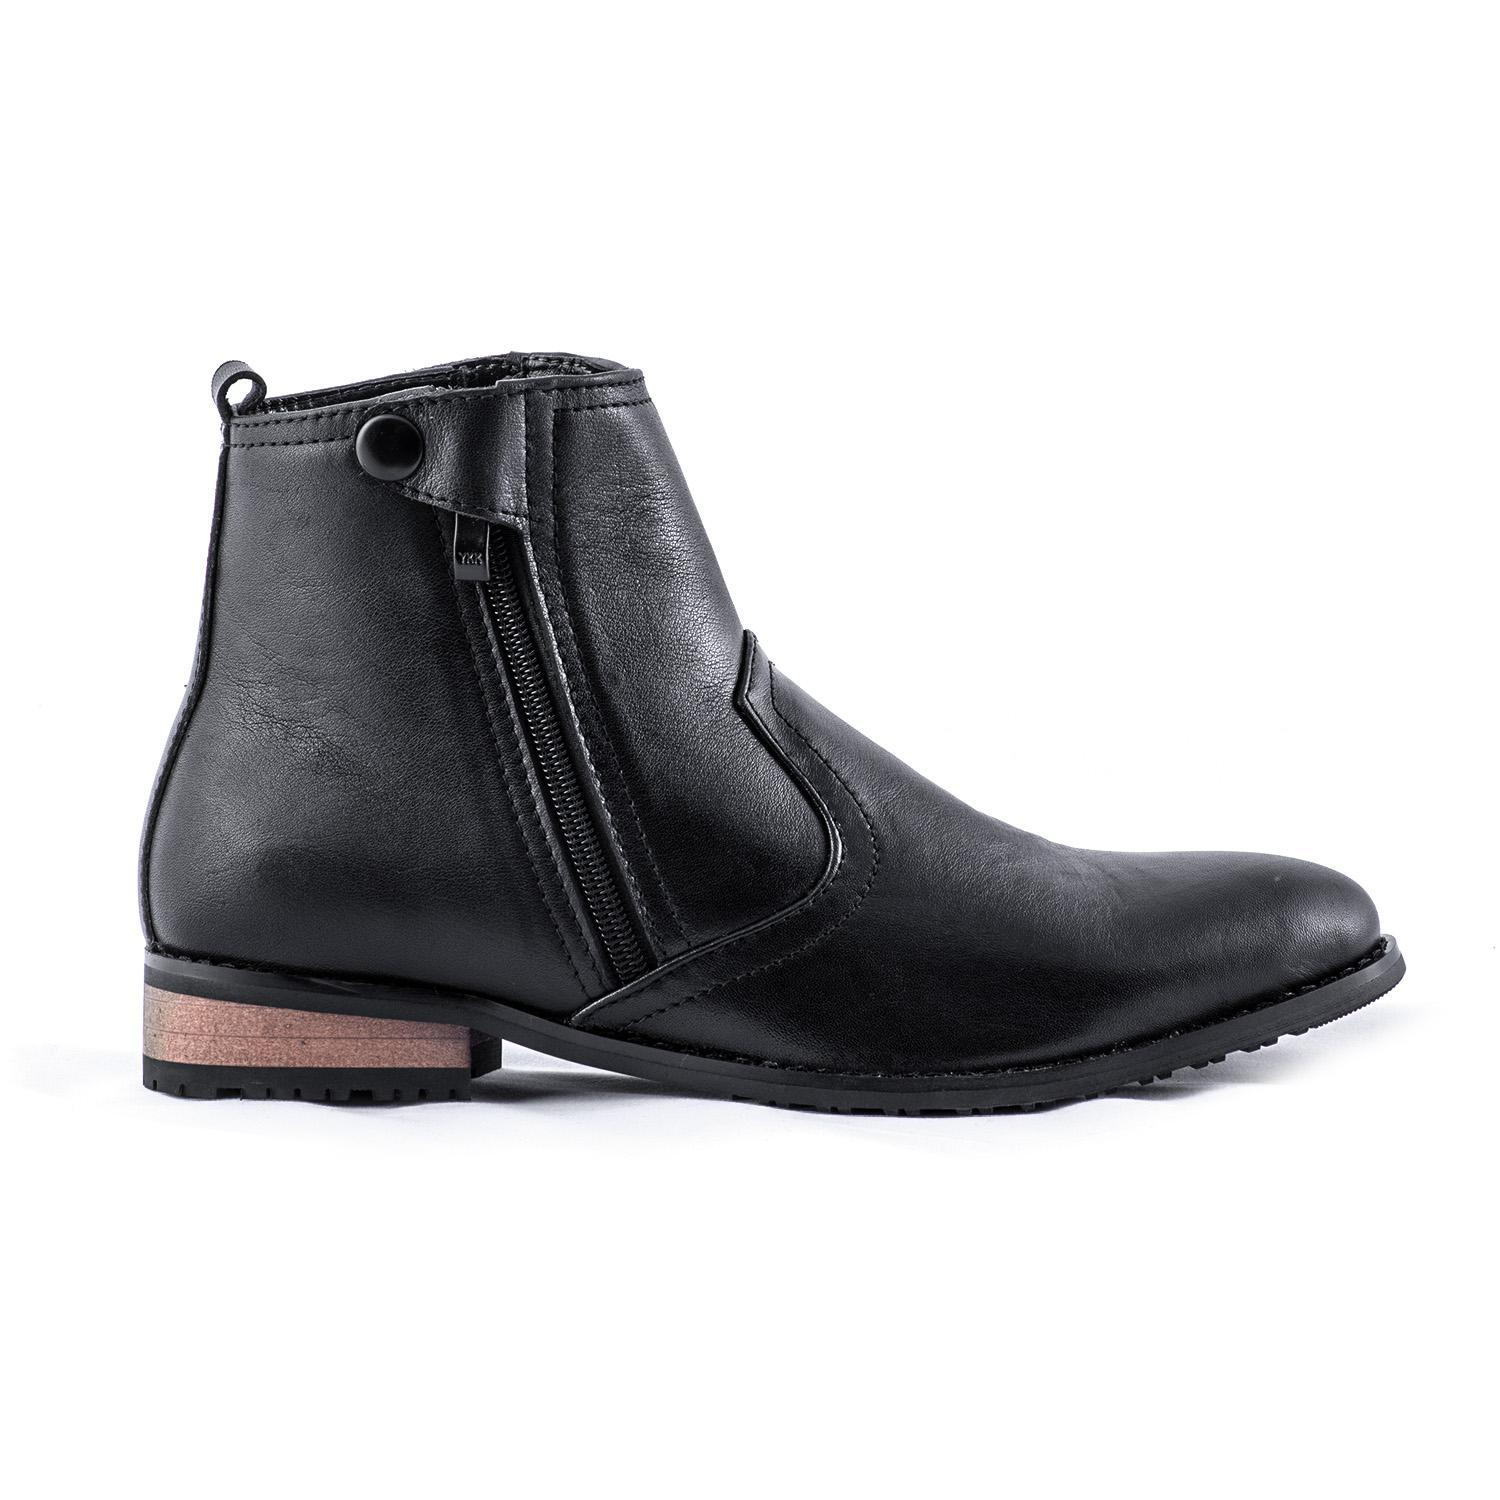 BF Dear Hill Solid Black Side Zip Closure Formal Ankle Boots For Men - 271